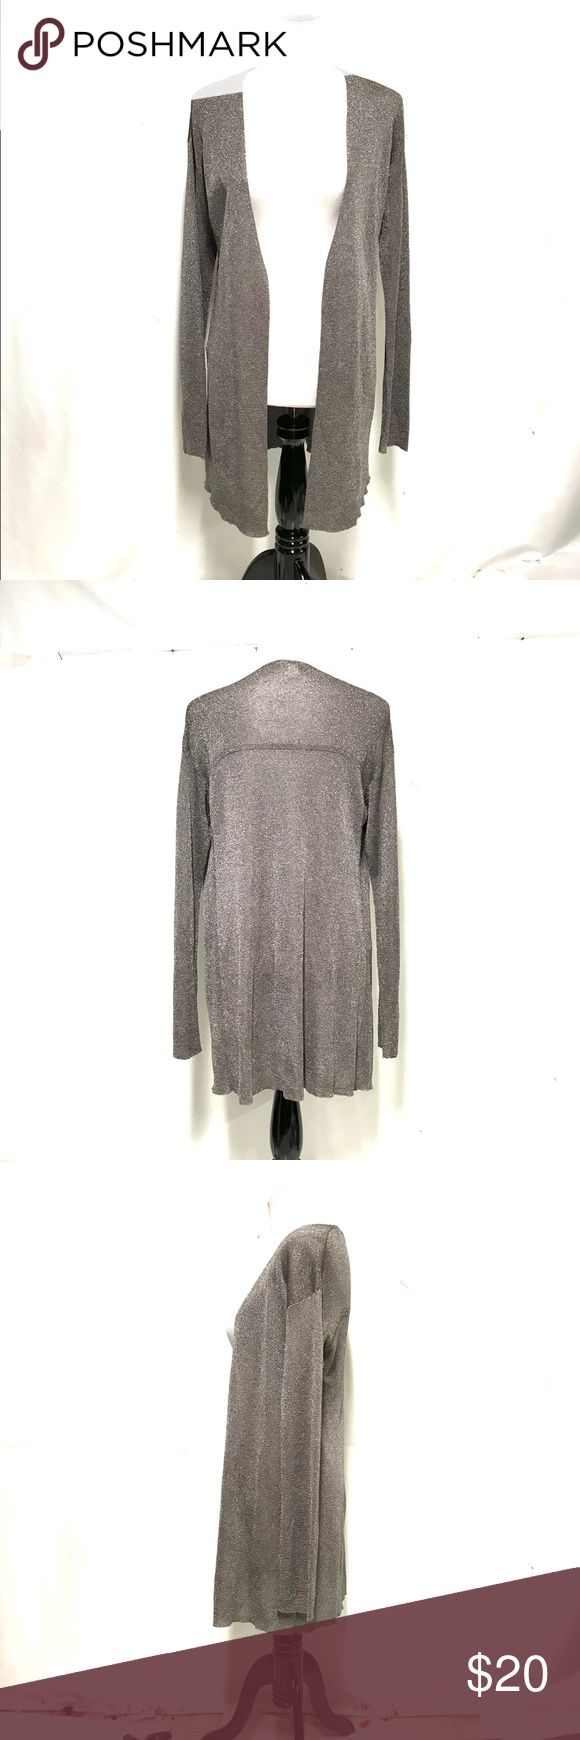 Coldwater creek long metallic cardigan To the must high. Very easy to pair, it is a pewter / silver metallic. Open front, not at all bulky.  No metallic in your  closet? This is a great jumping off point! Coldwater Creek Sweaters Cardigans